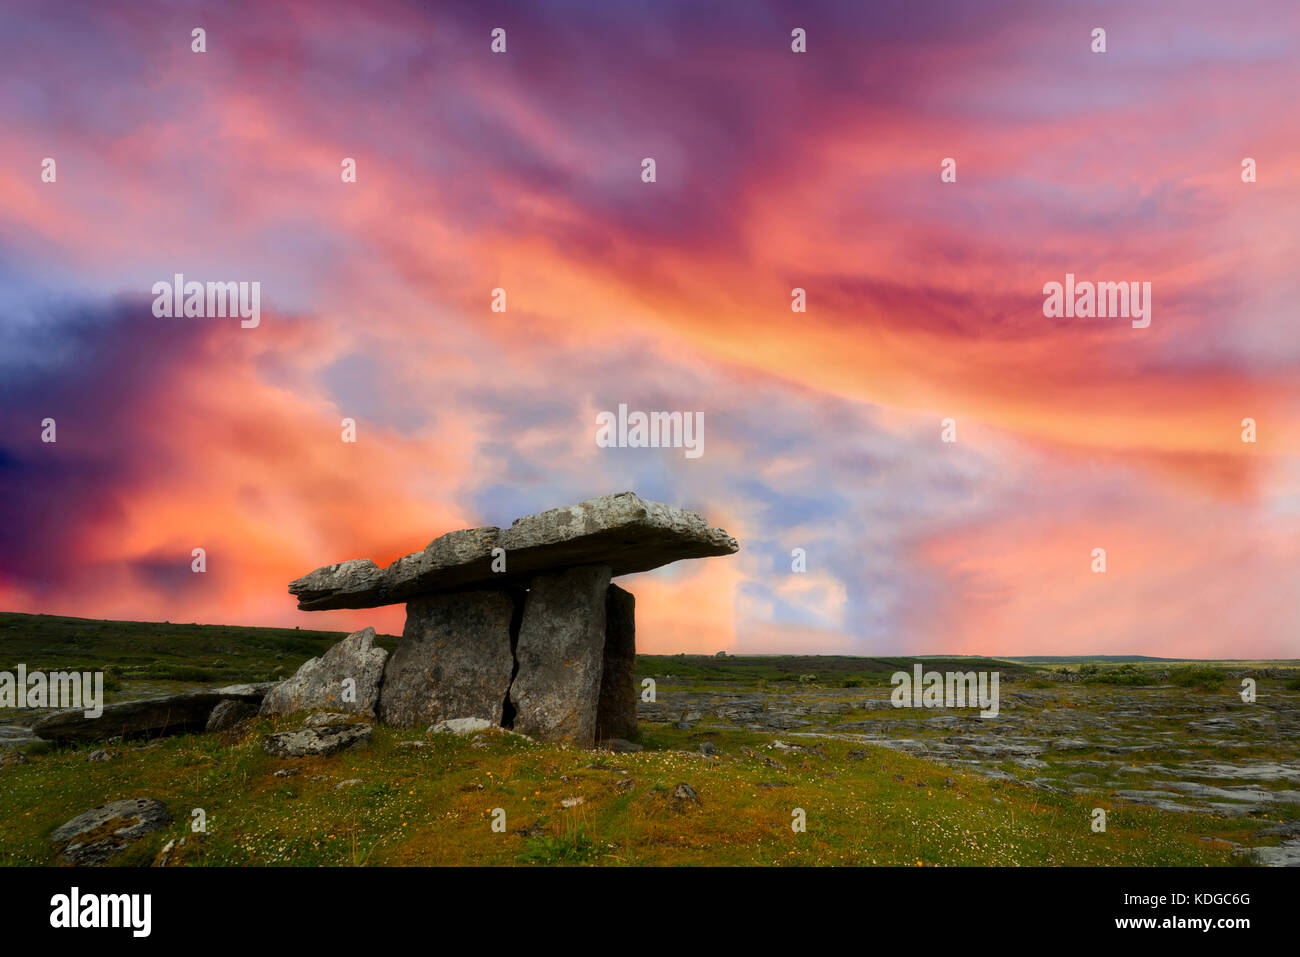 Poulnabrone ruins burial site. The Burren, County Clare, Ireland - Stock Image